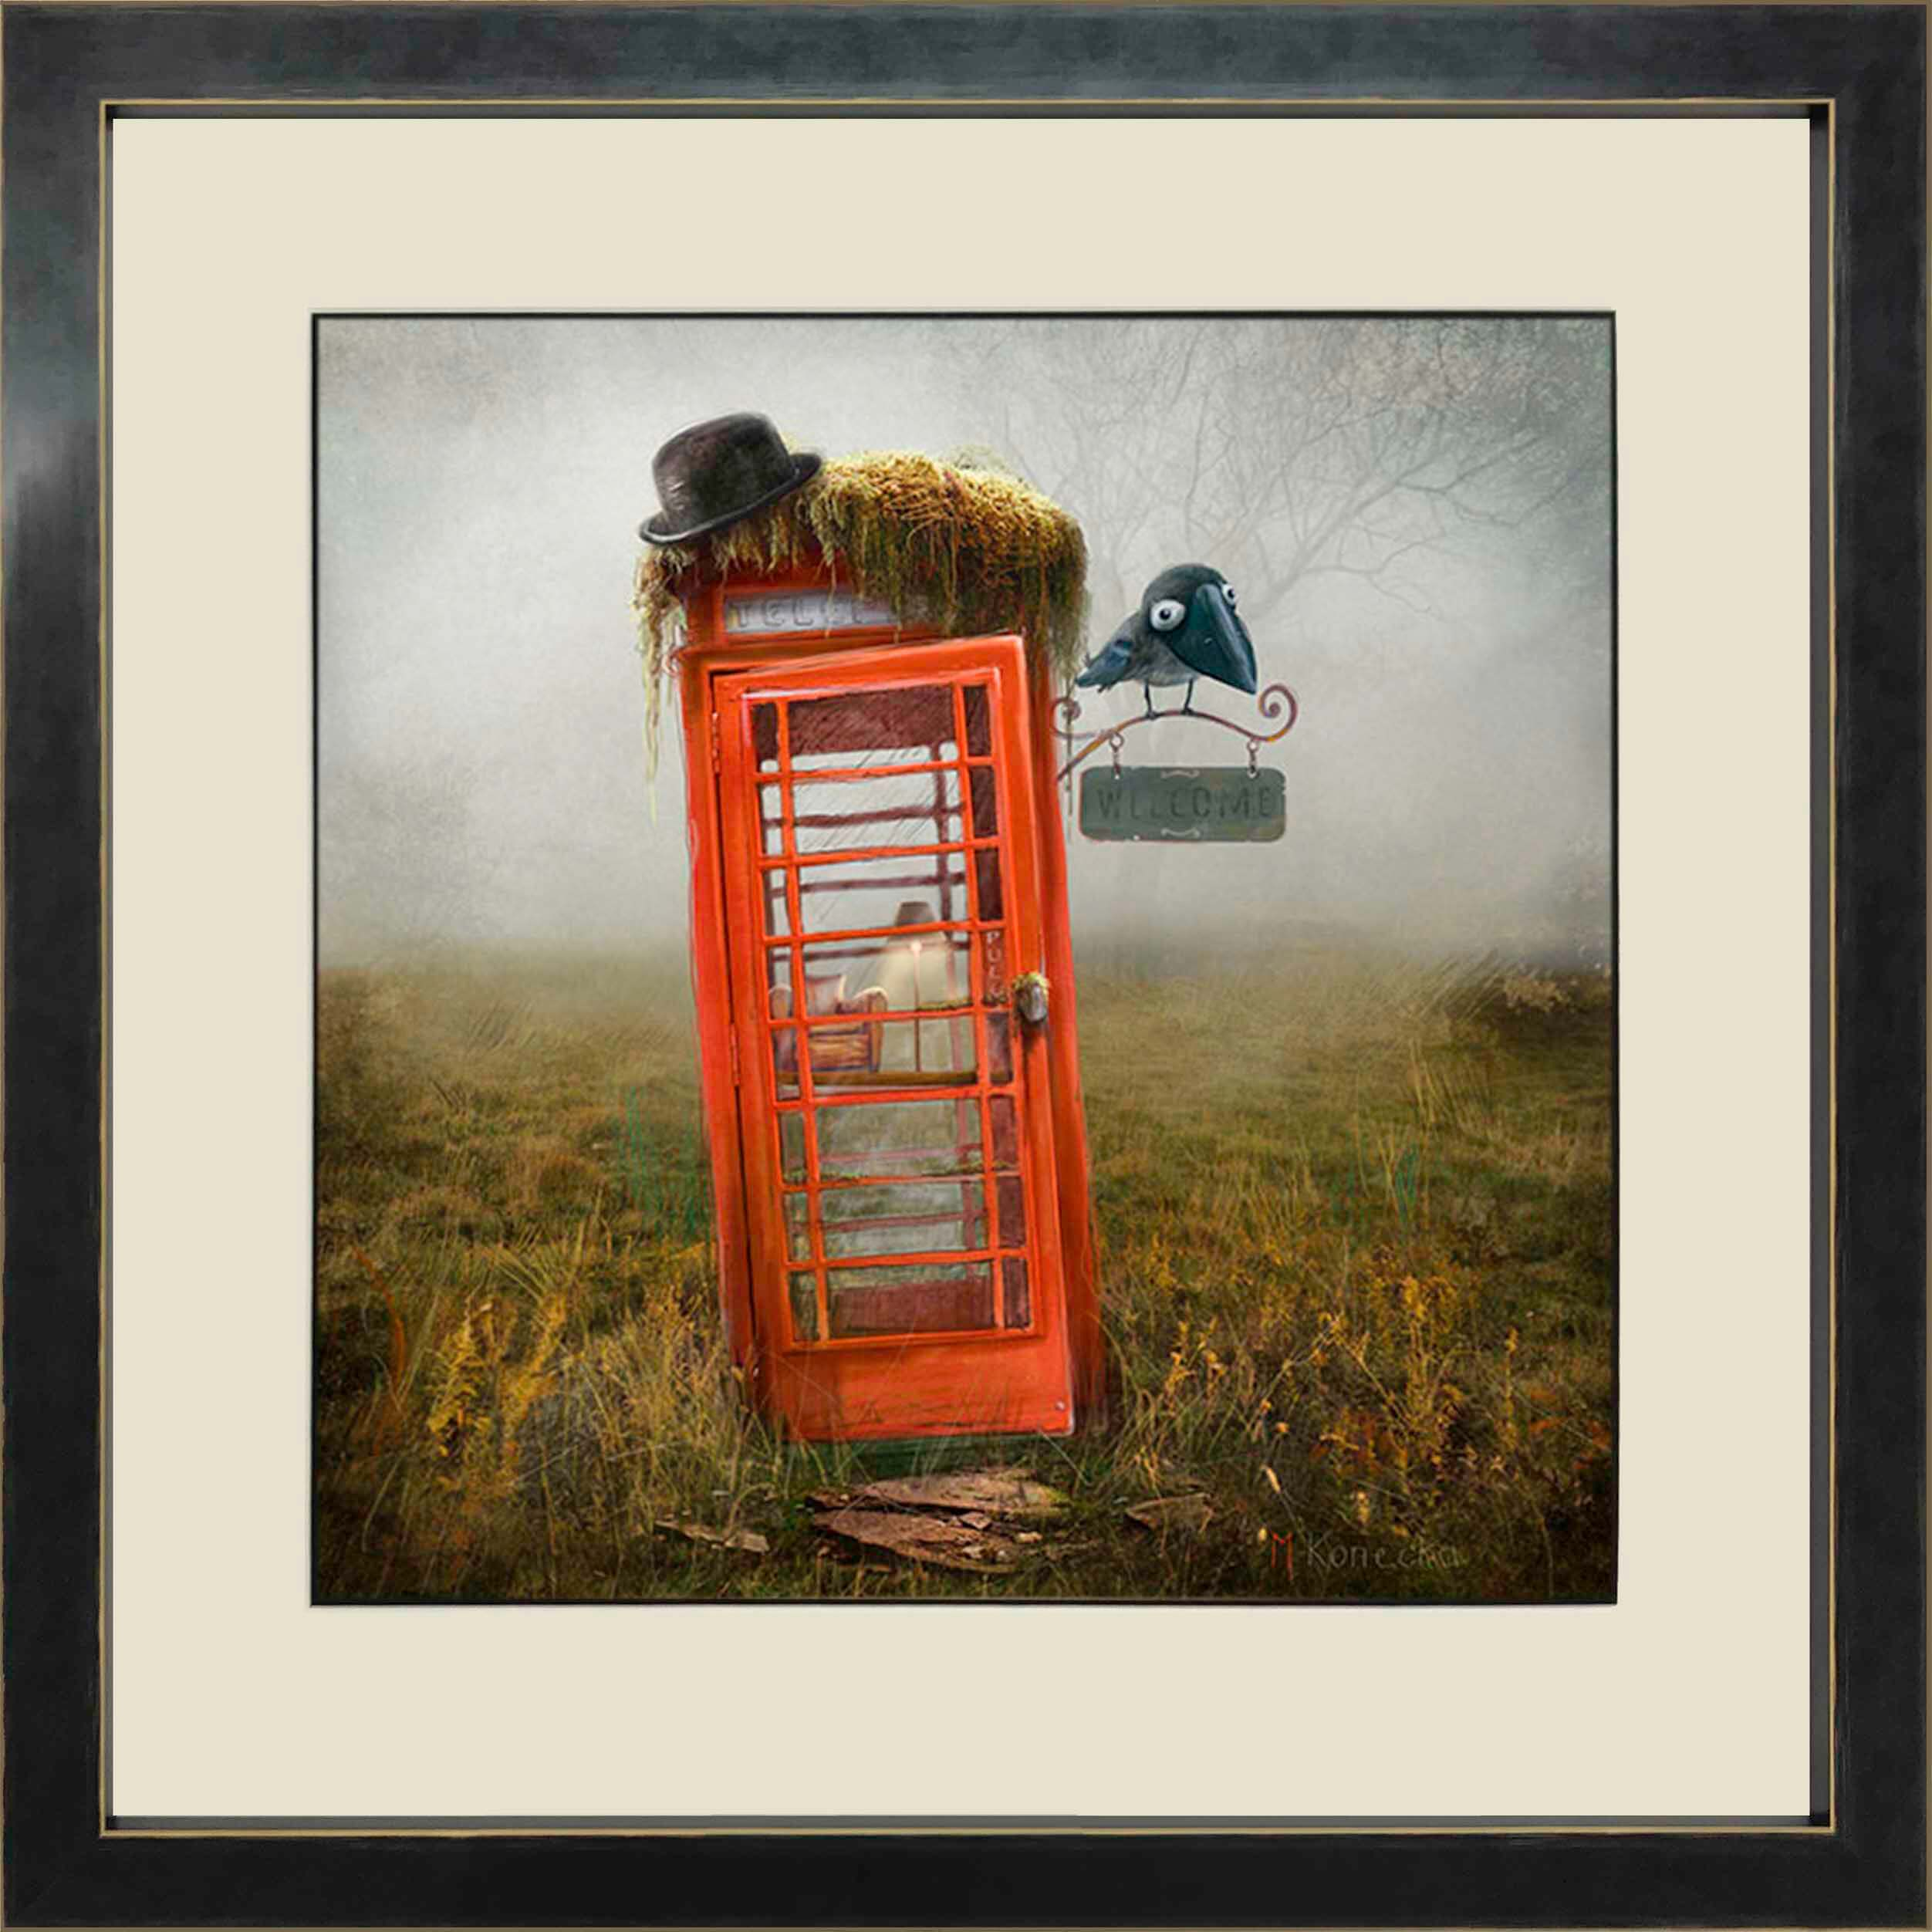 Phonebox Cottage by Matylda Konecka